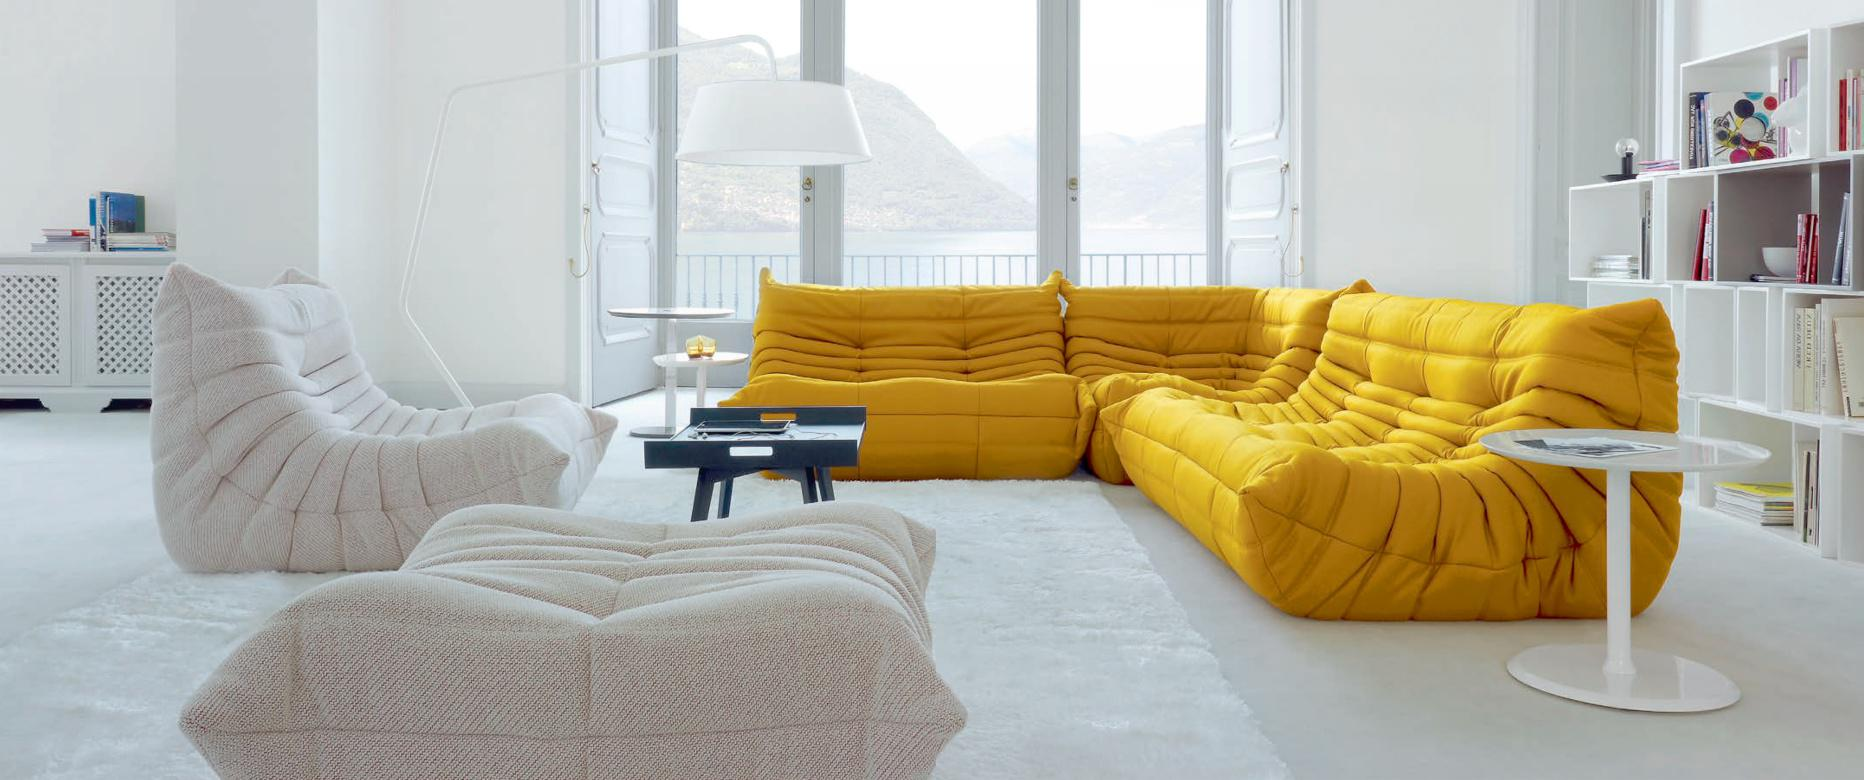 Yellow and White Buffalo 3 Seater, 2 Seater, Corner Fabric Sofa at Idus Furniture Store